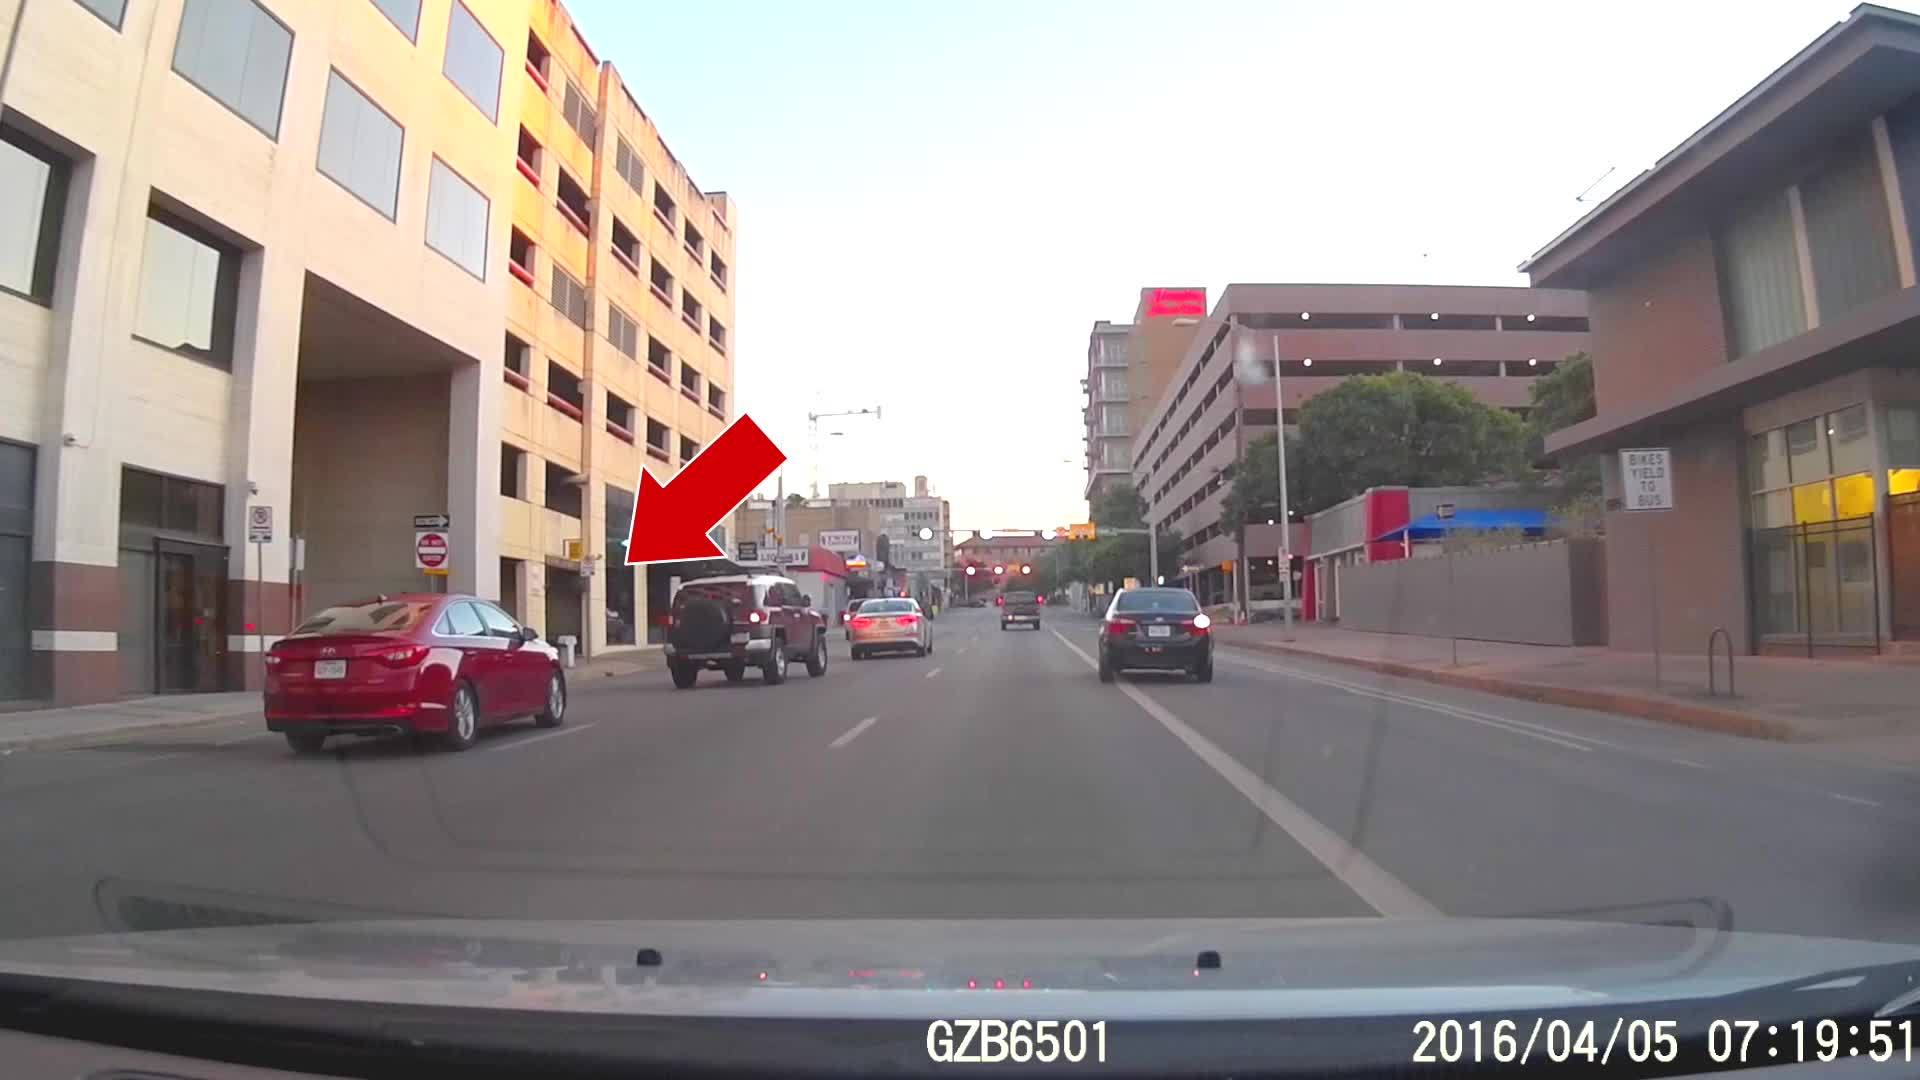 baddriving, dashcam, roadcam, Remembering your turn is hard GIFs